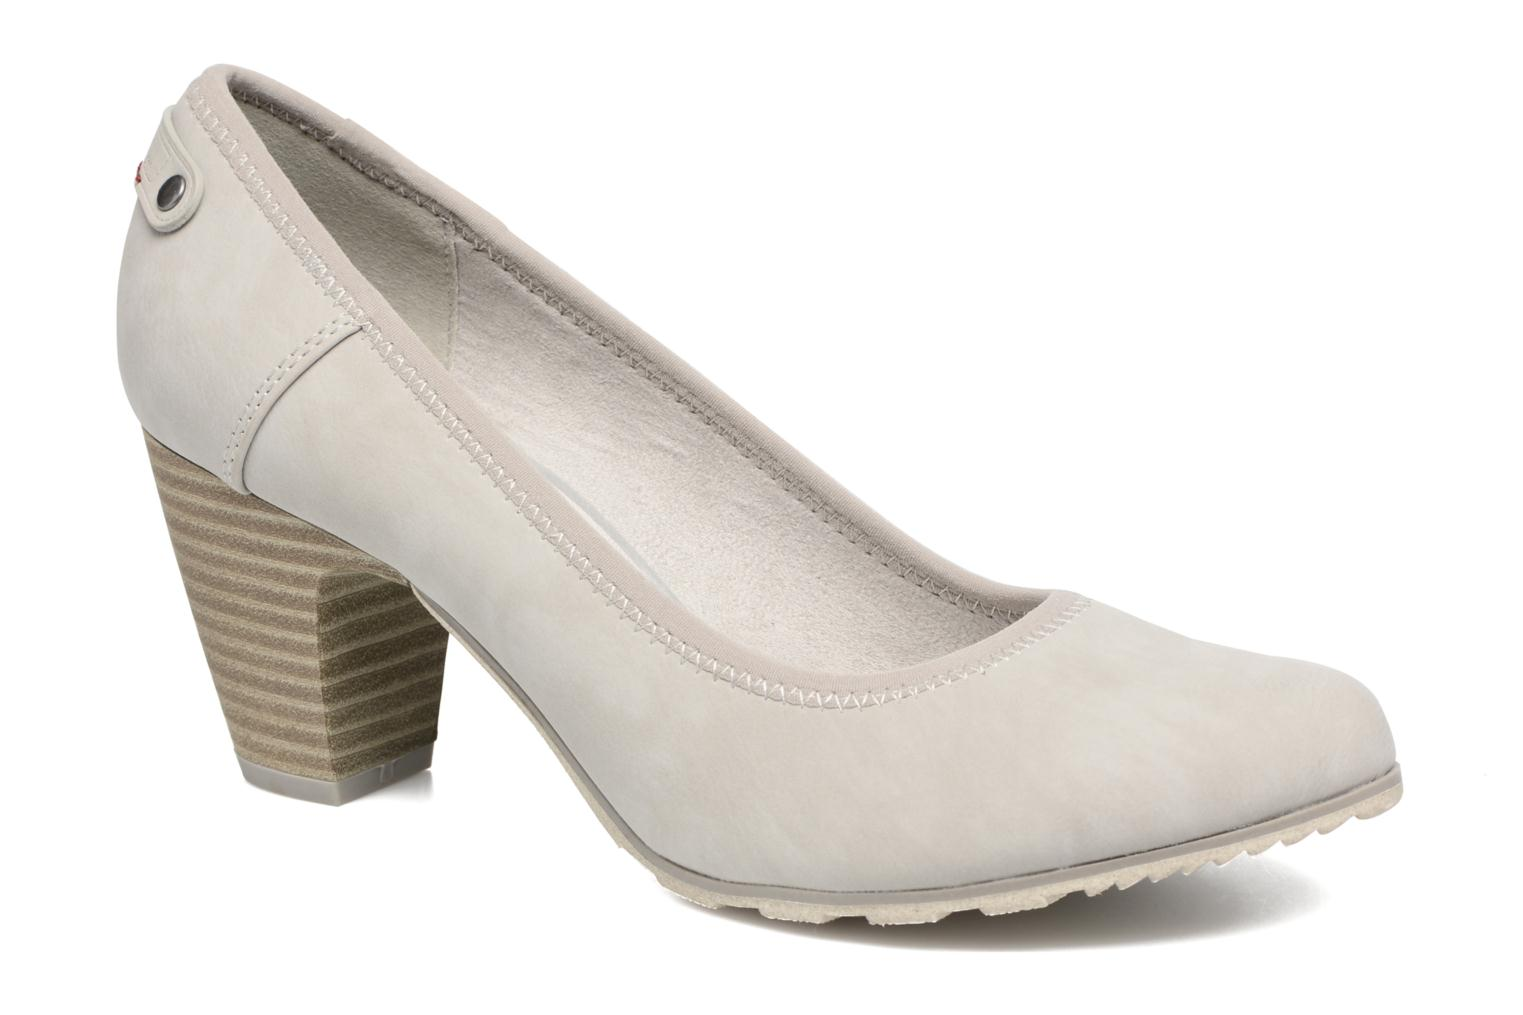 Marques Chaussure femme S.Oliver femme Nyelle Off white